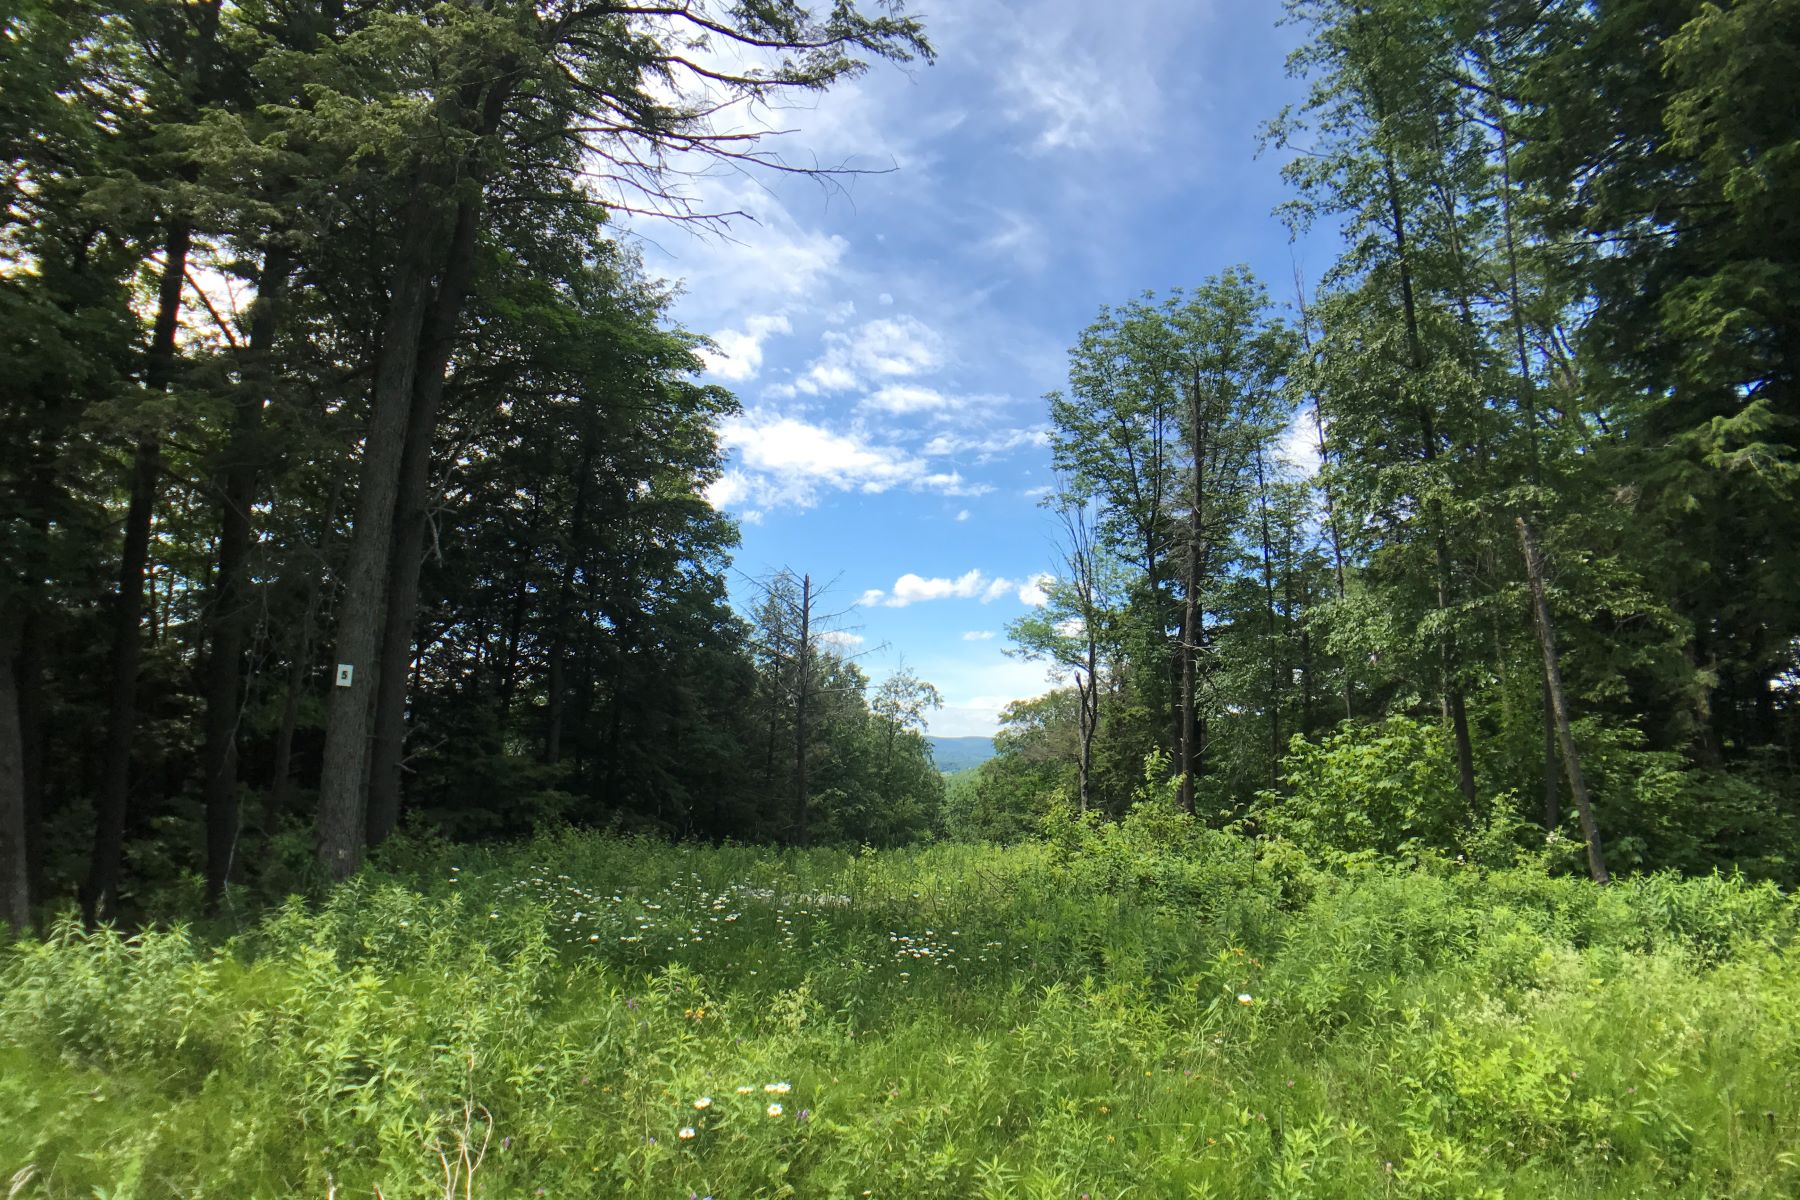 Terreno por un Venta en Affordable Ready-to-Build Parcel with Shared Waterfront Access Lot #5, Moose Dr Lee, Massachusetts, 01238 Estados Unidos